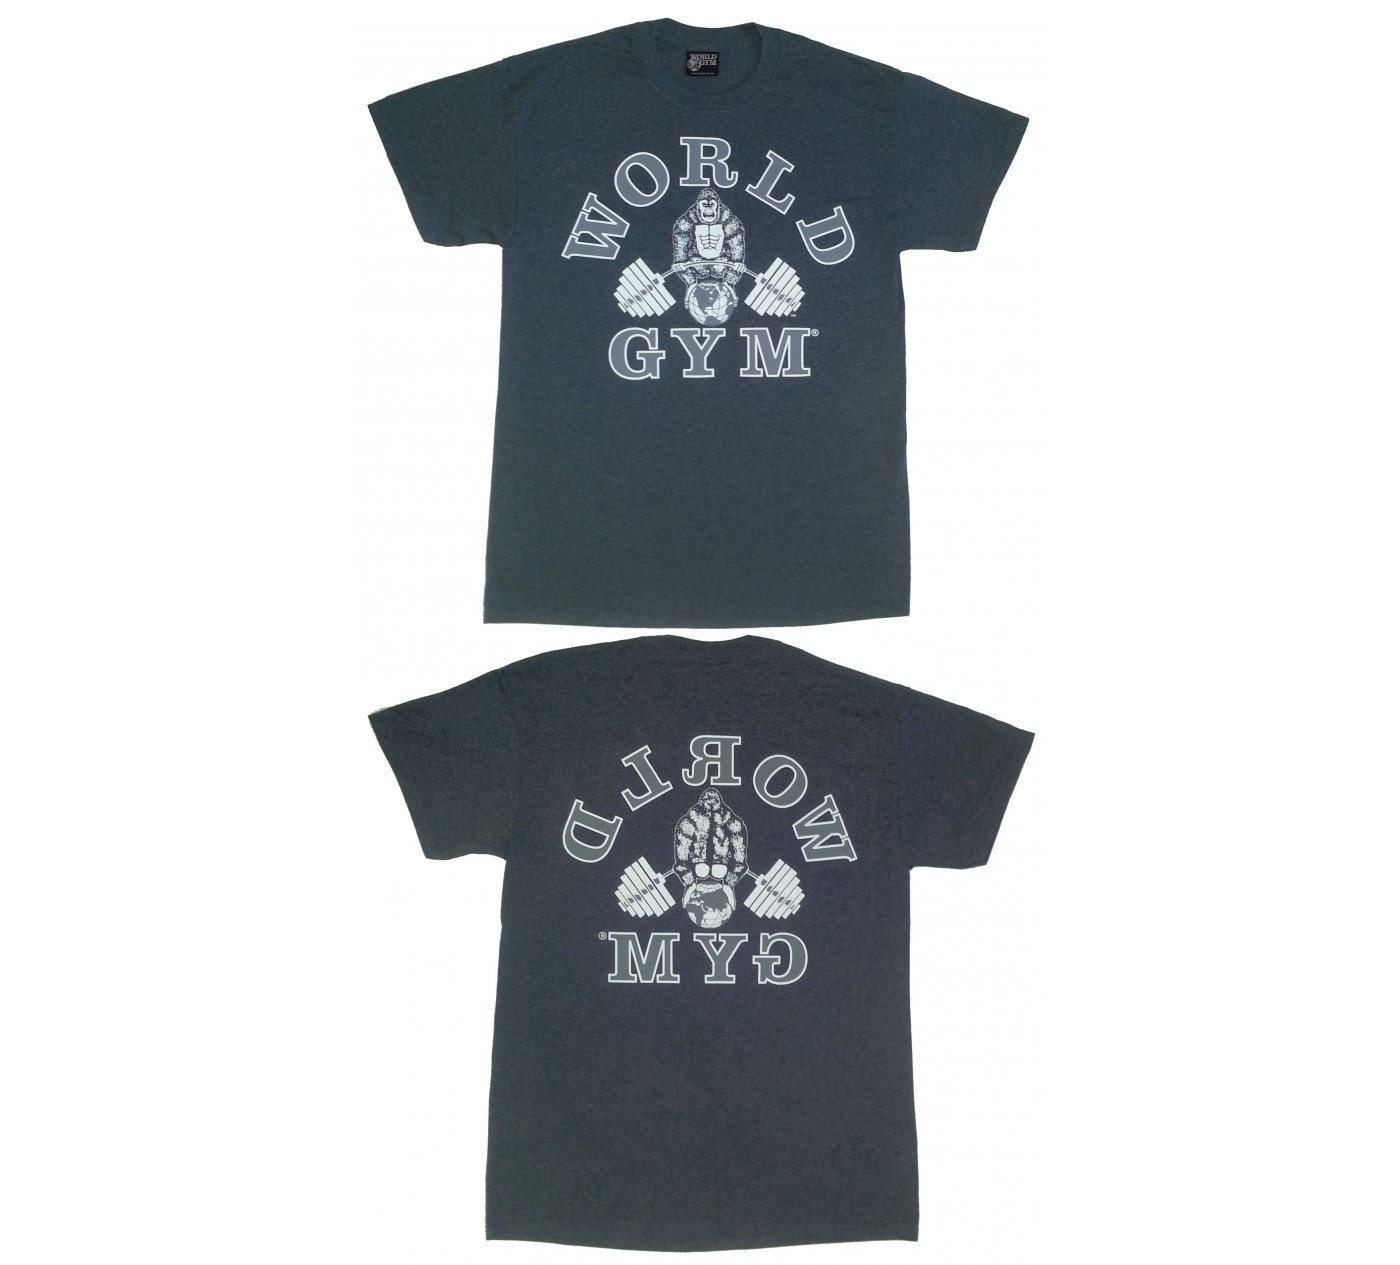 W100 World Gym shirt retrò Gorilla logo